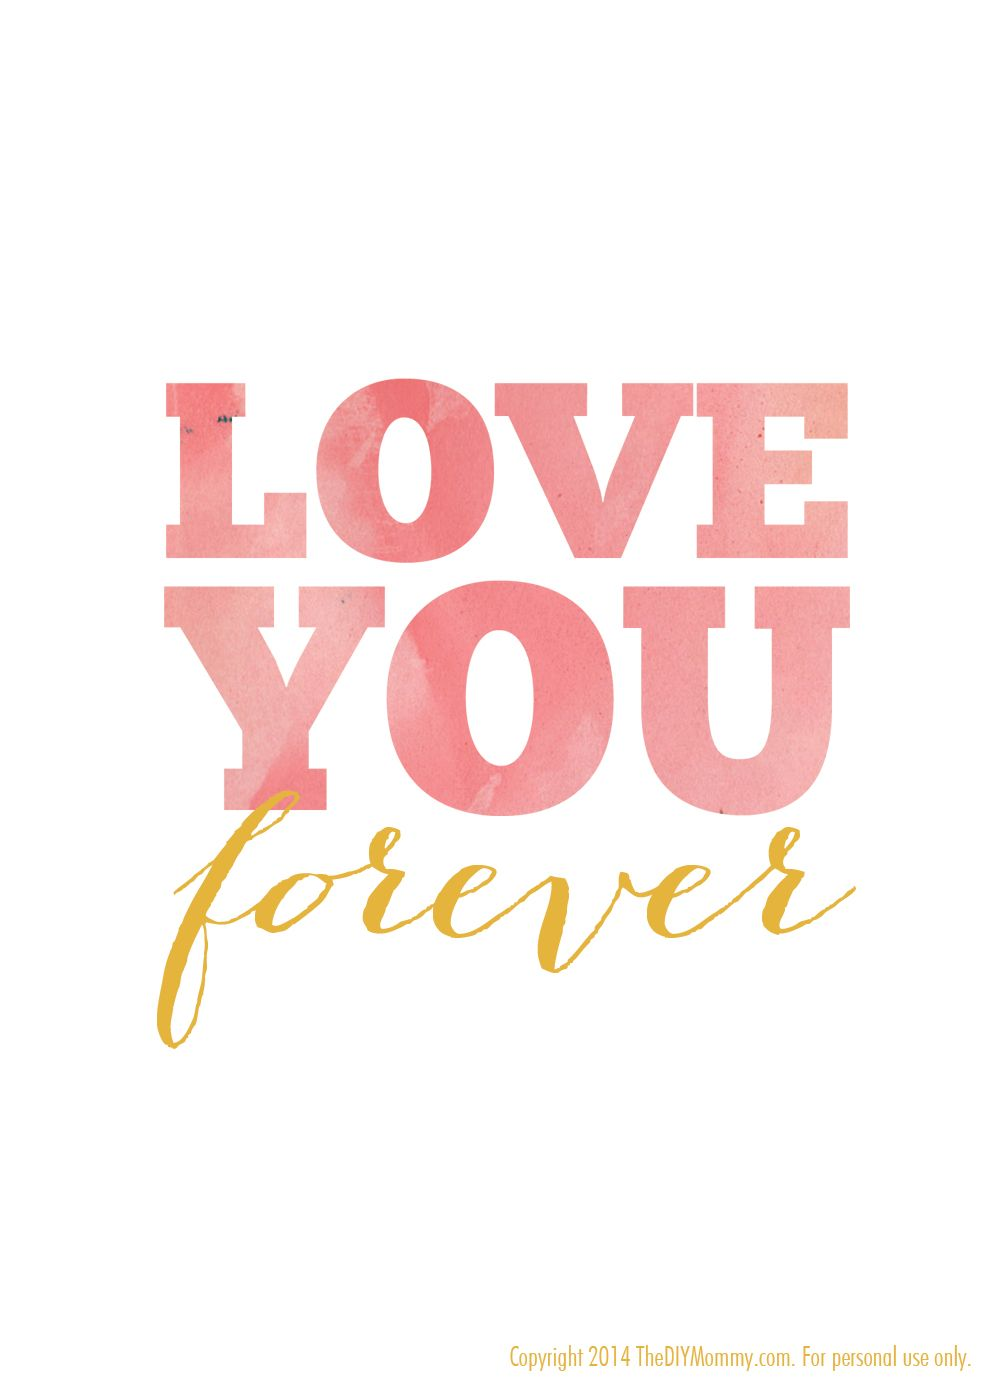 love you forever free nursery printable art by the diy mommy | baby